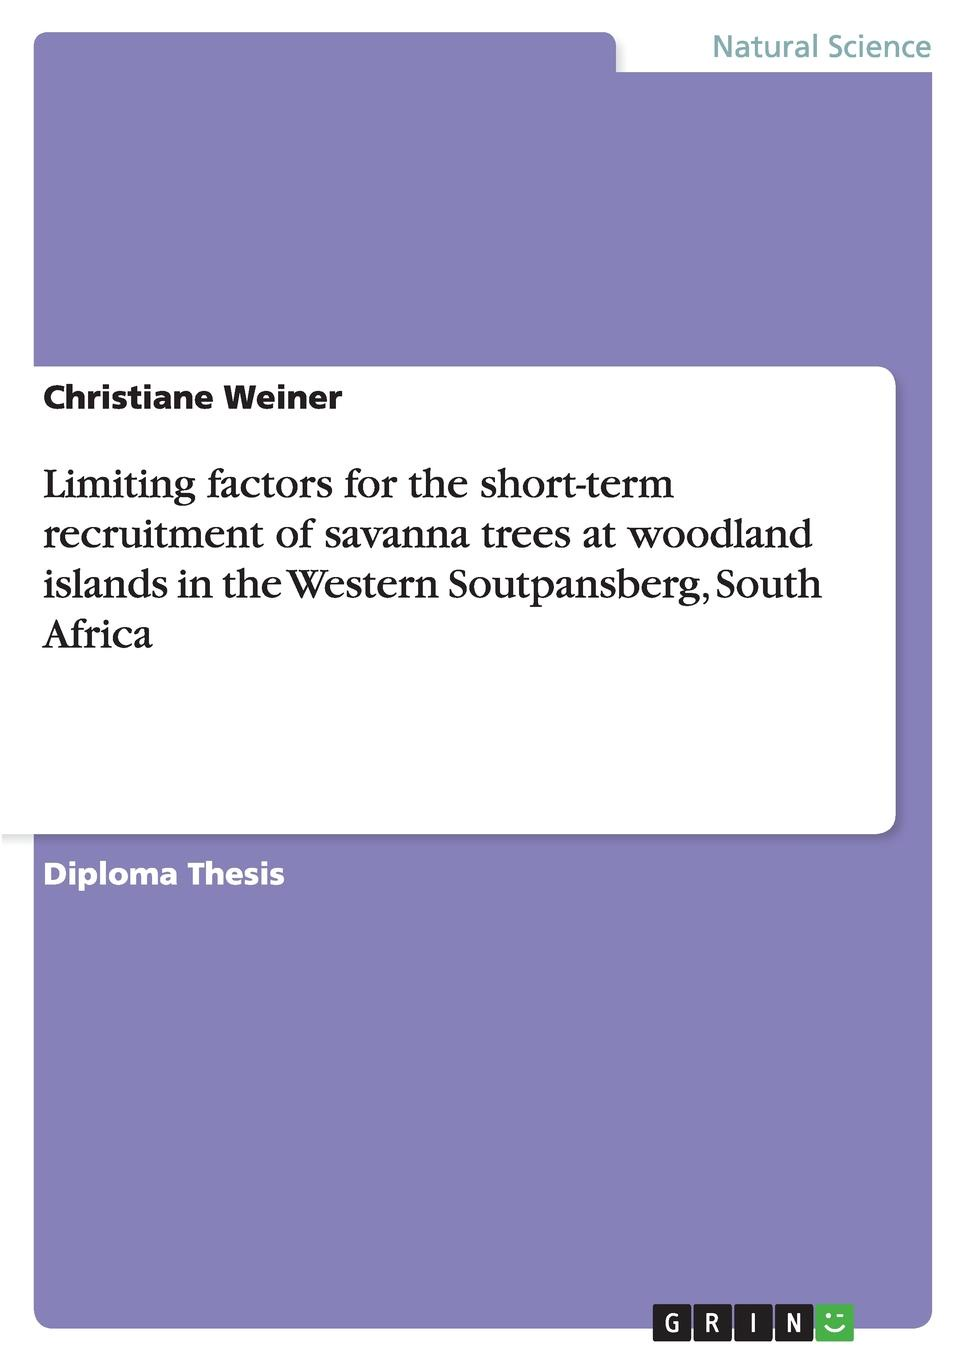 Christiane Weiner Limiting factors for the short-term recruitment of savanna trees at woodland islands in the Western Soutpansberg, South Africa a tree is a plant